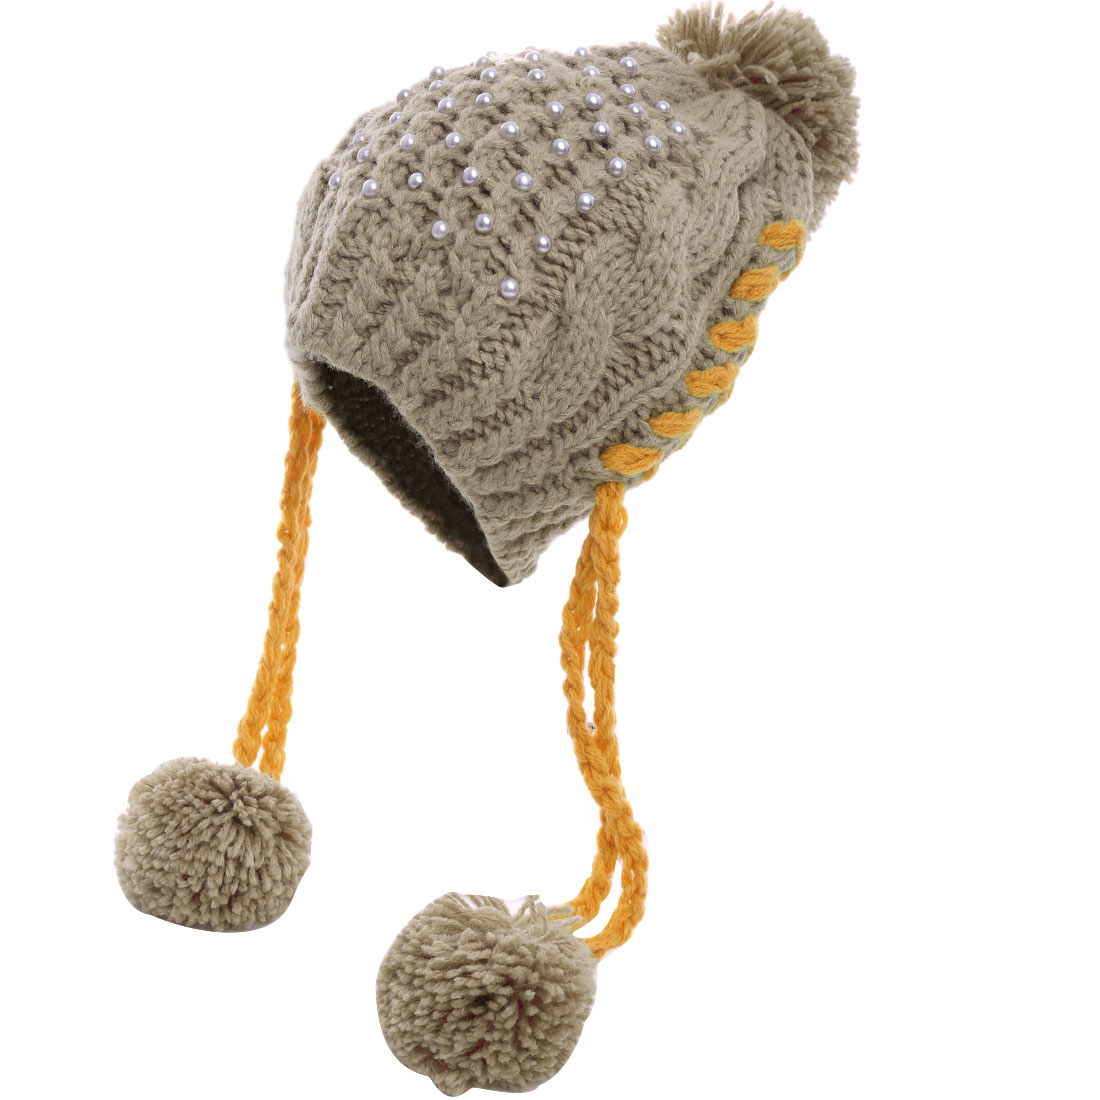 Women's Fake Pearl Embellished Lovely Pom Pom Knitted Ear Flap Hat Coffee